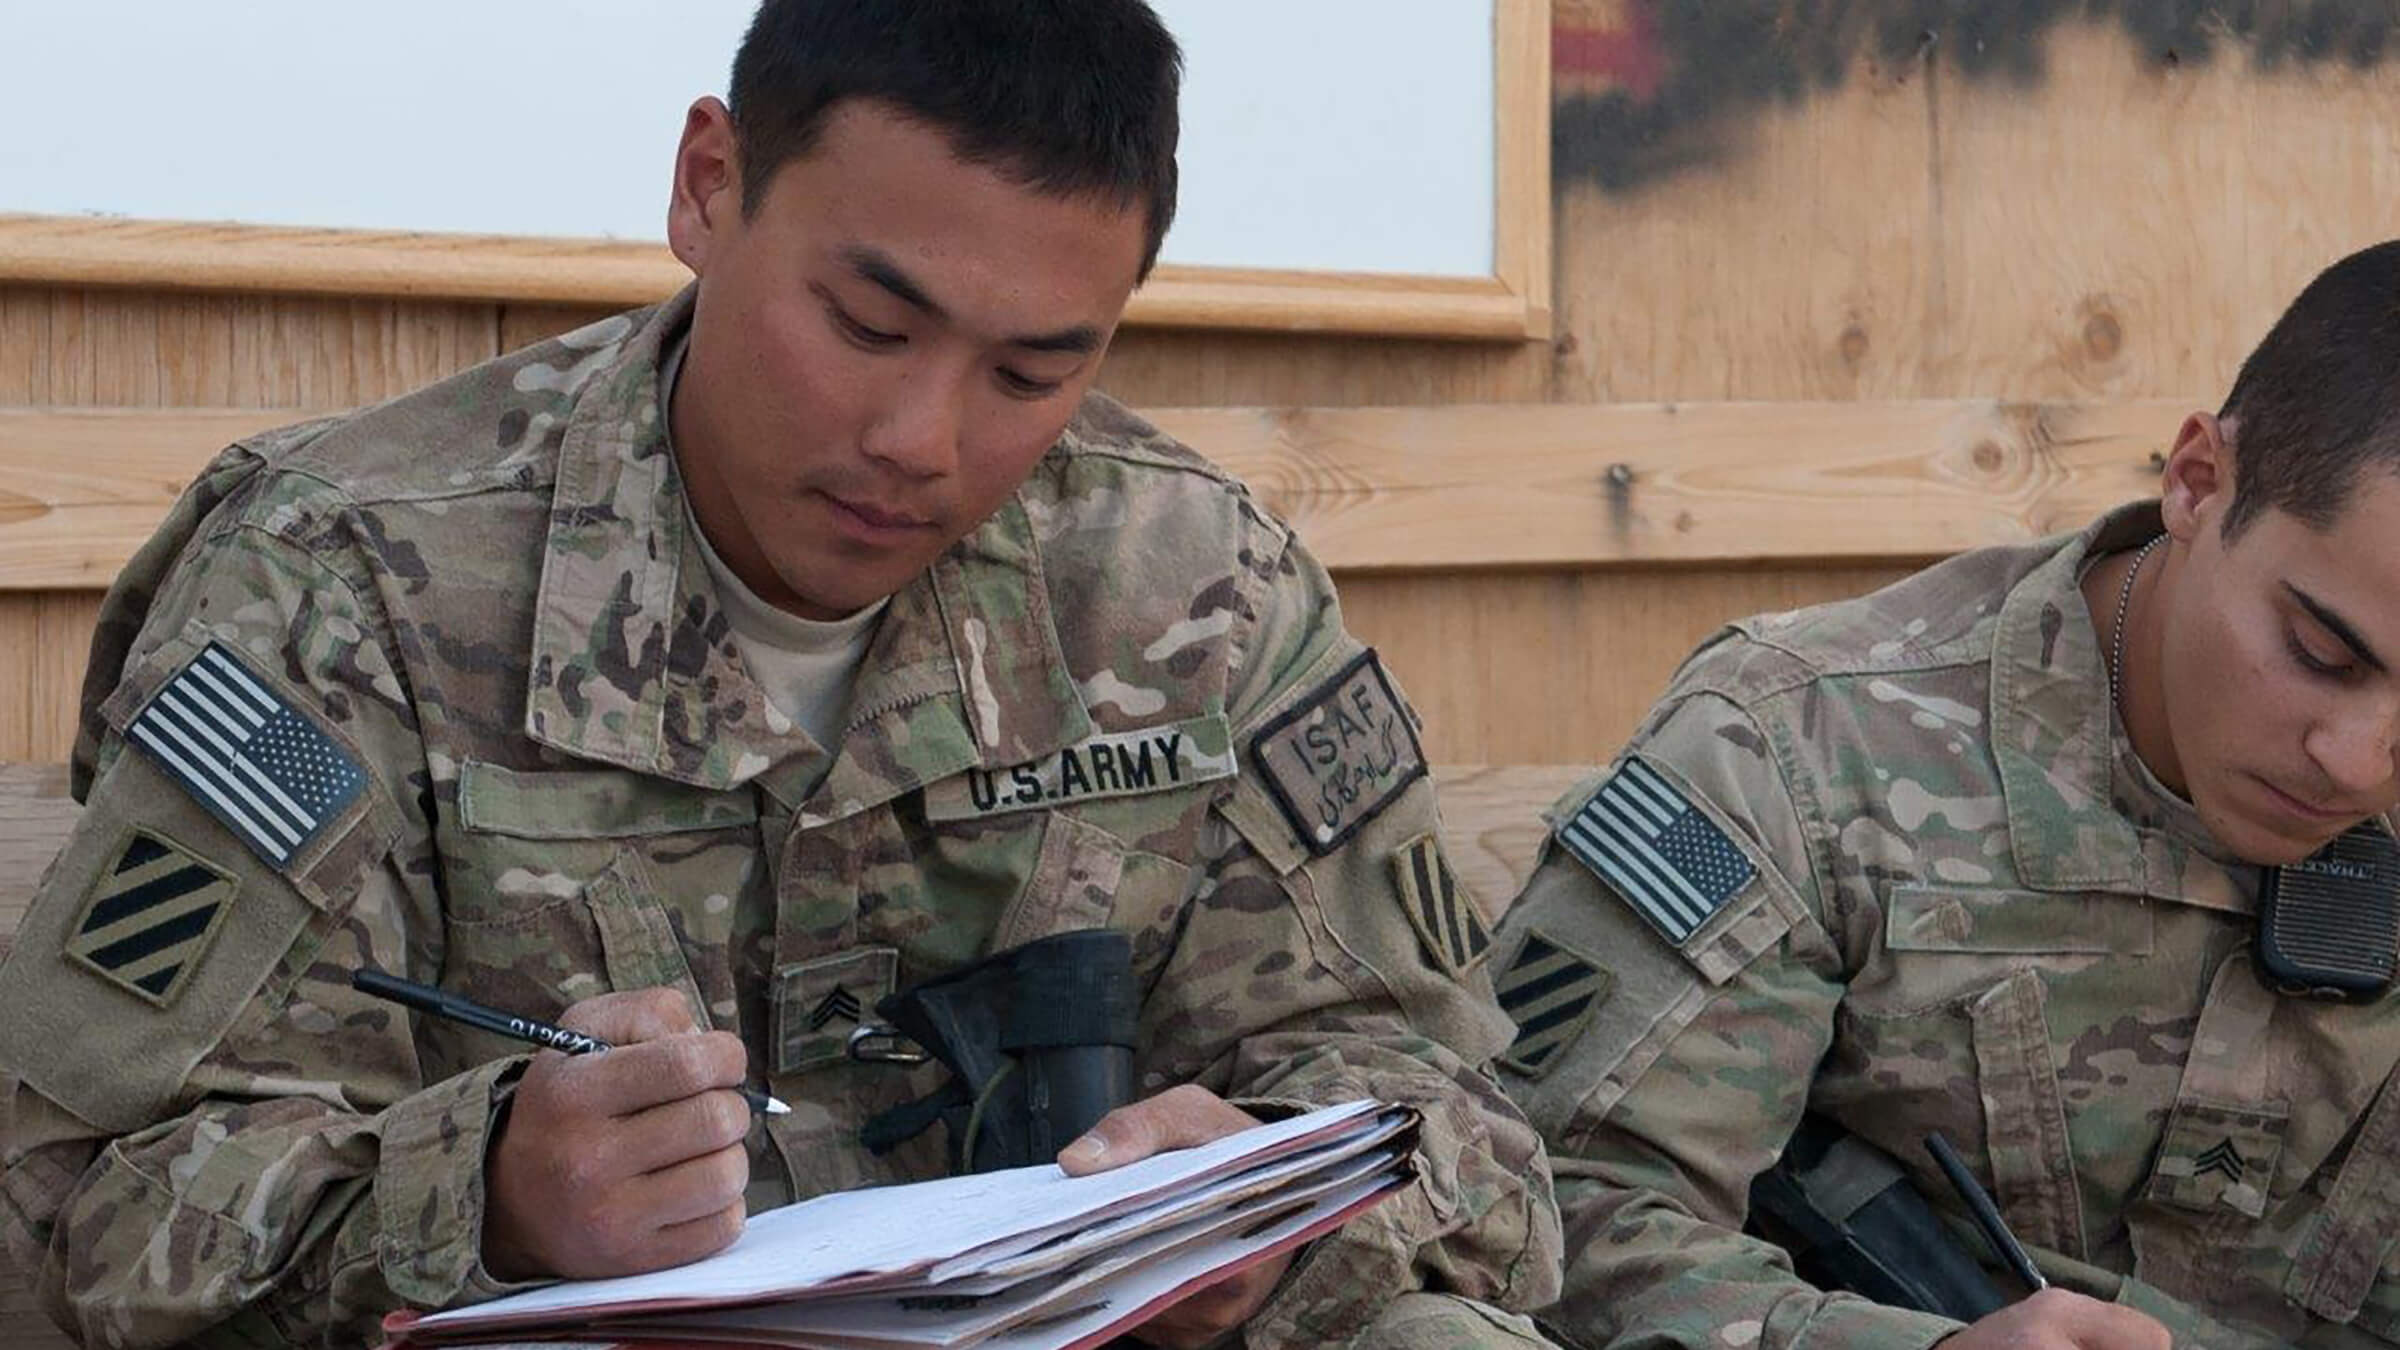 Service member taking notes